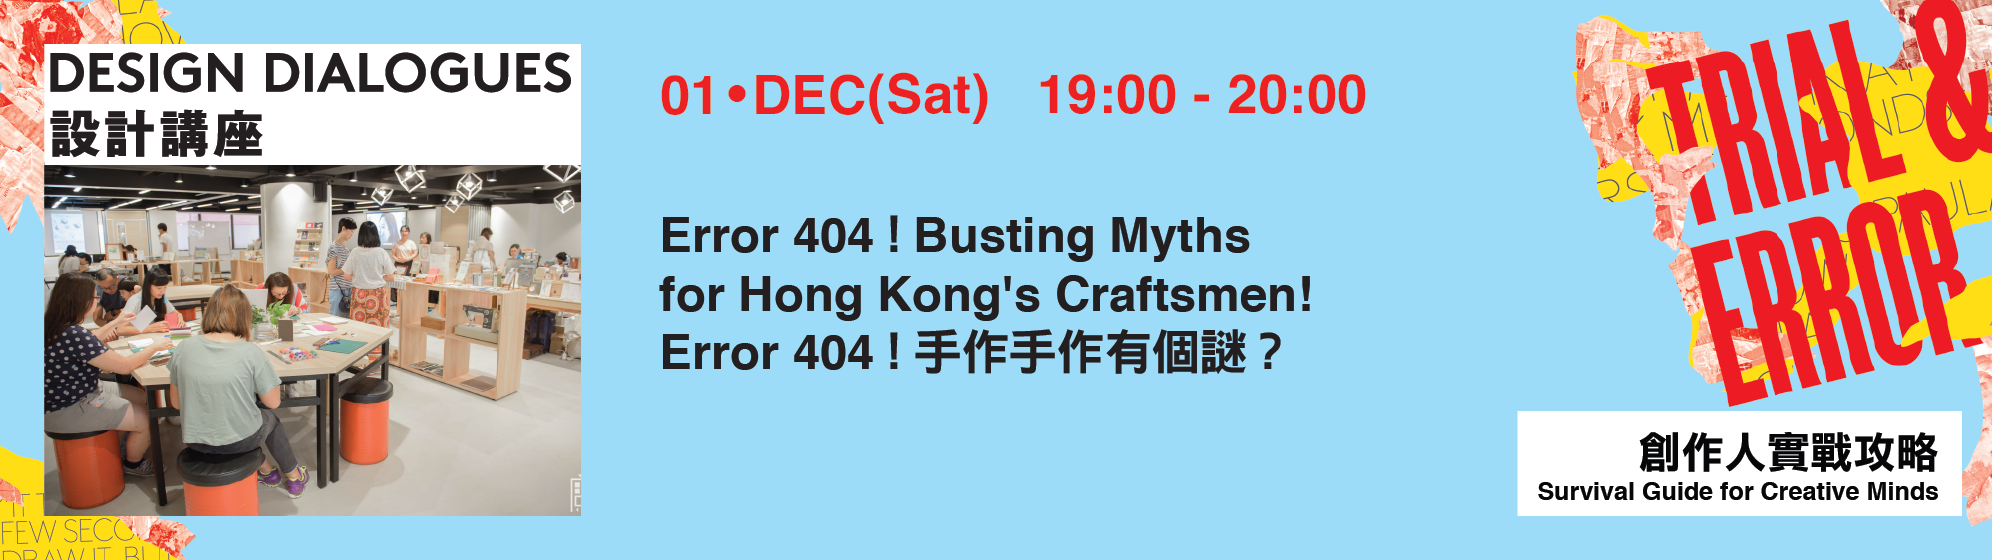 Error 404!手作手作有個謎?| Error 404! Busting Myths for Hong Kong's Craftsmen!